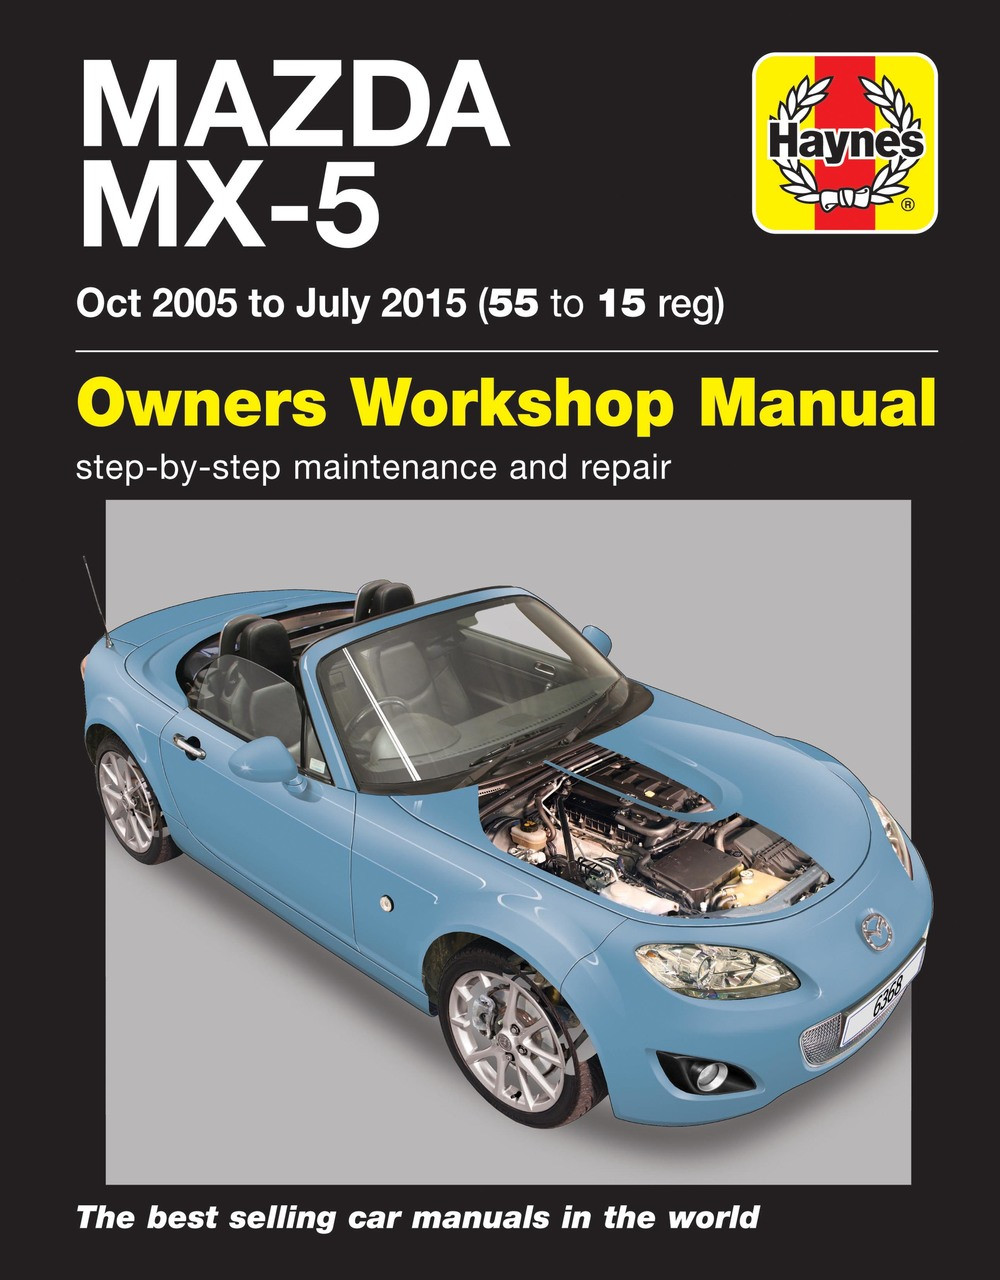 Mazda 3 Owners Manual 2009 Images Gallery